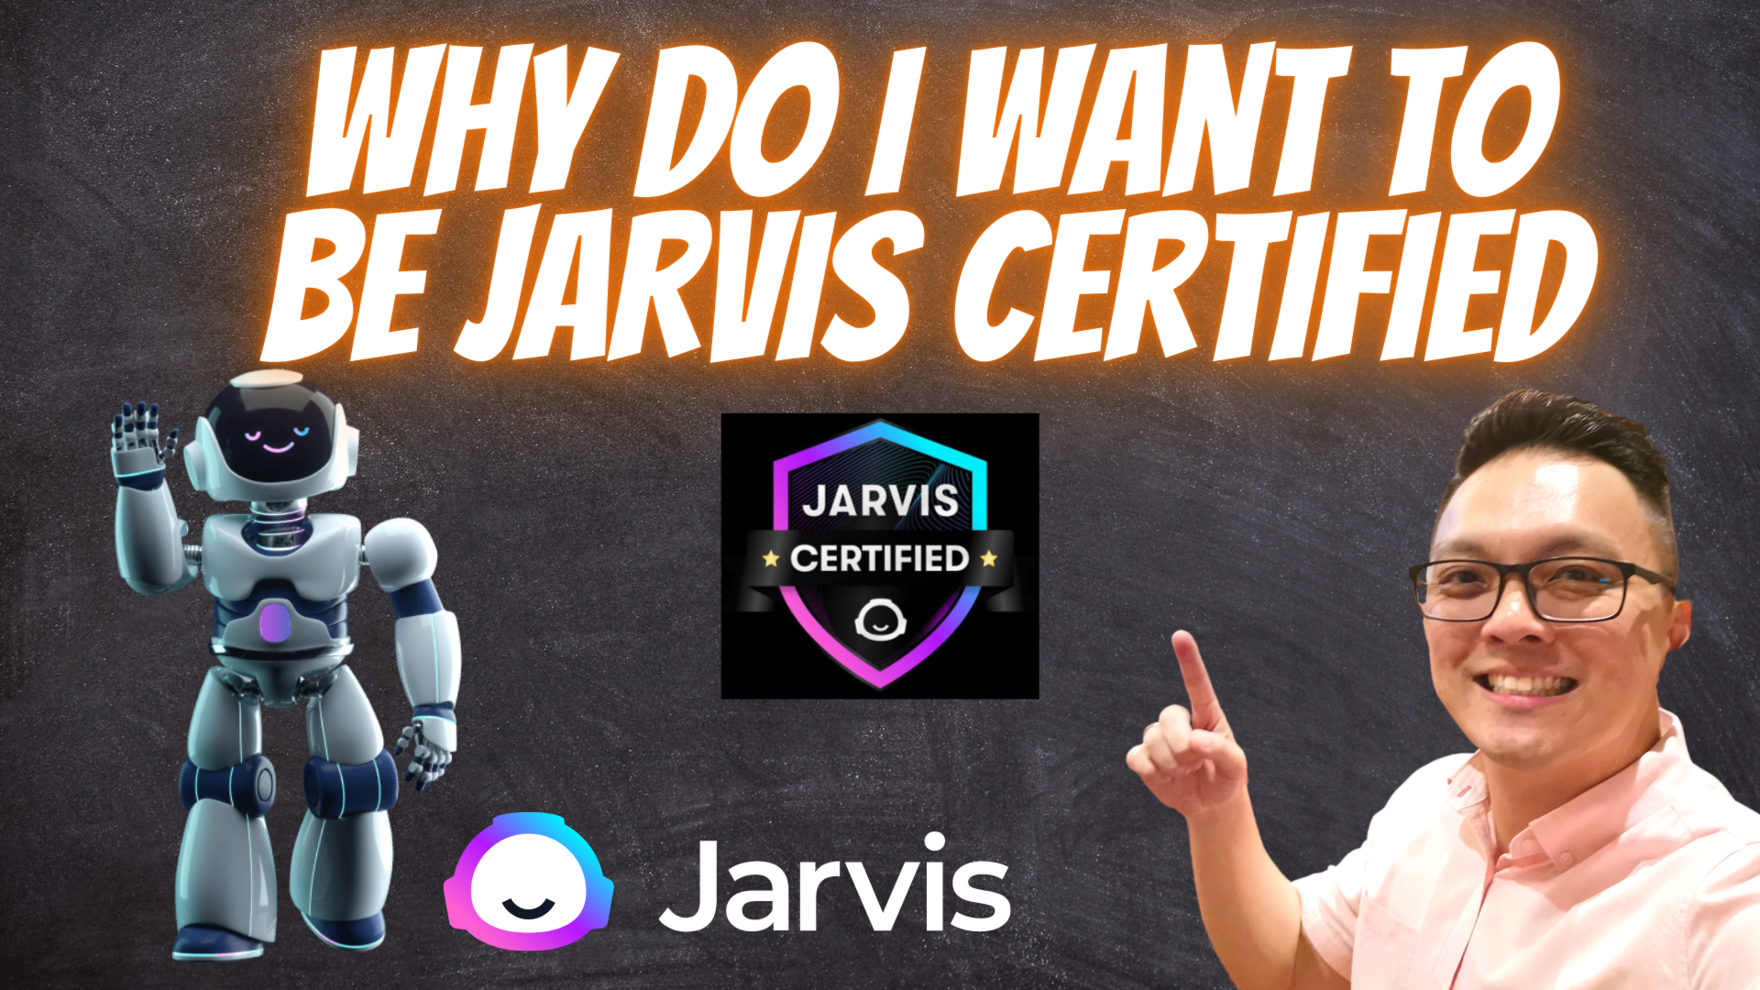 Why Do I Want to Be JARVIS Certified